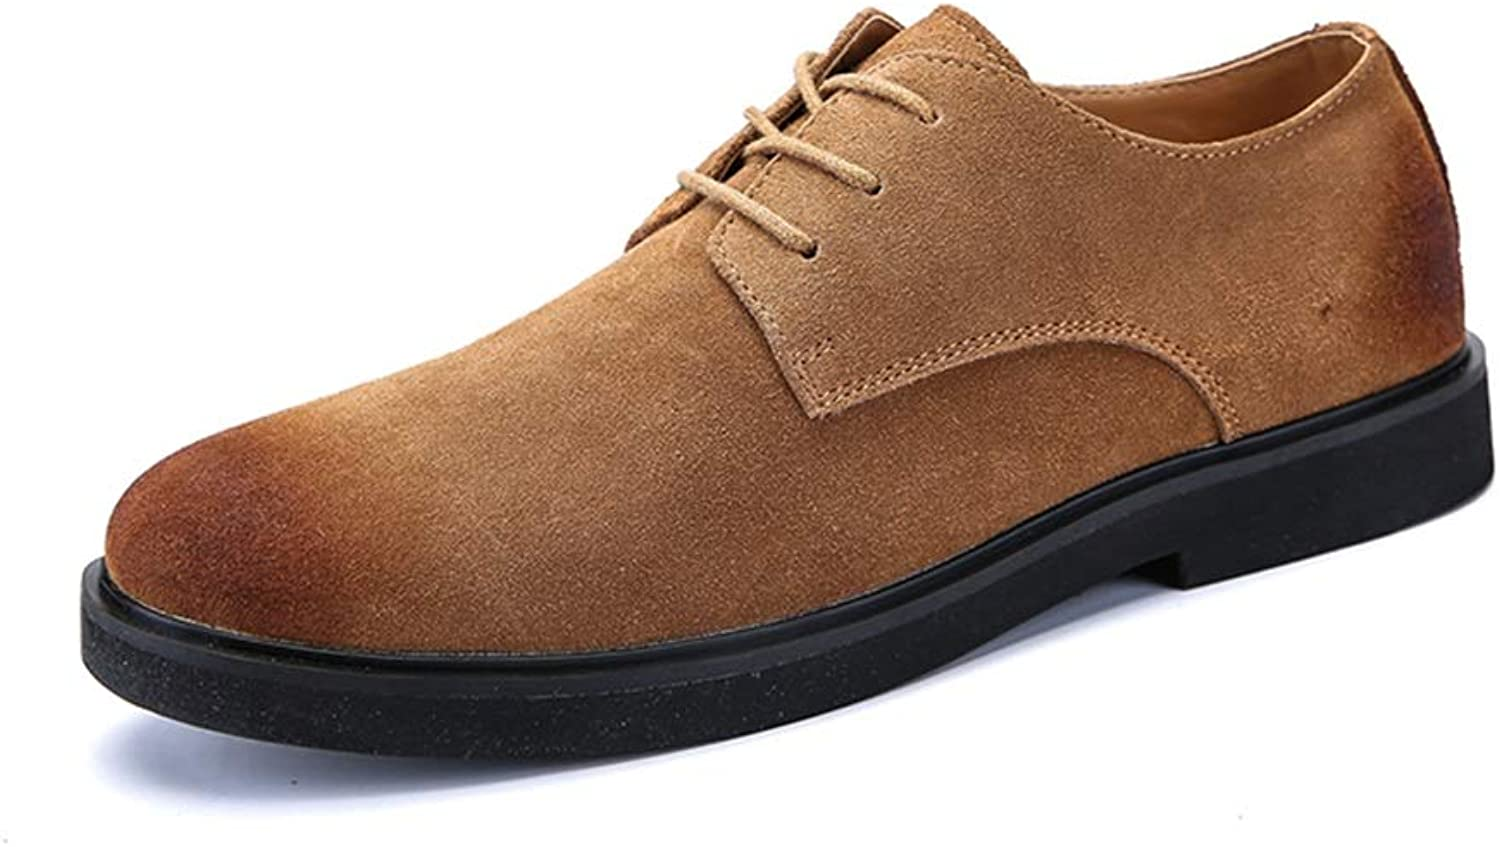 SRY-Fashion shoes Men's Fashion Oxford Casual Comfy Unproblematic Retro Lace-up Formal shoes